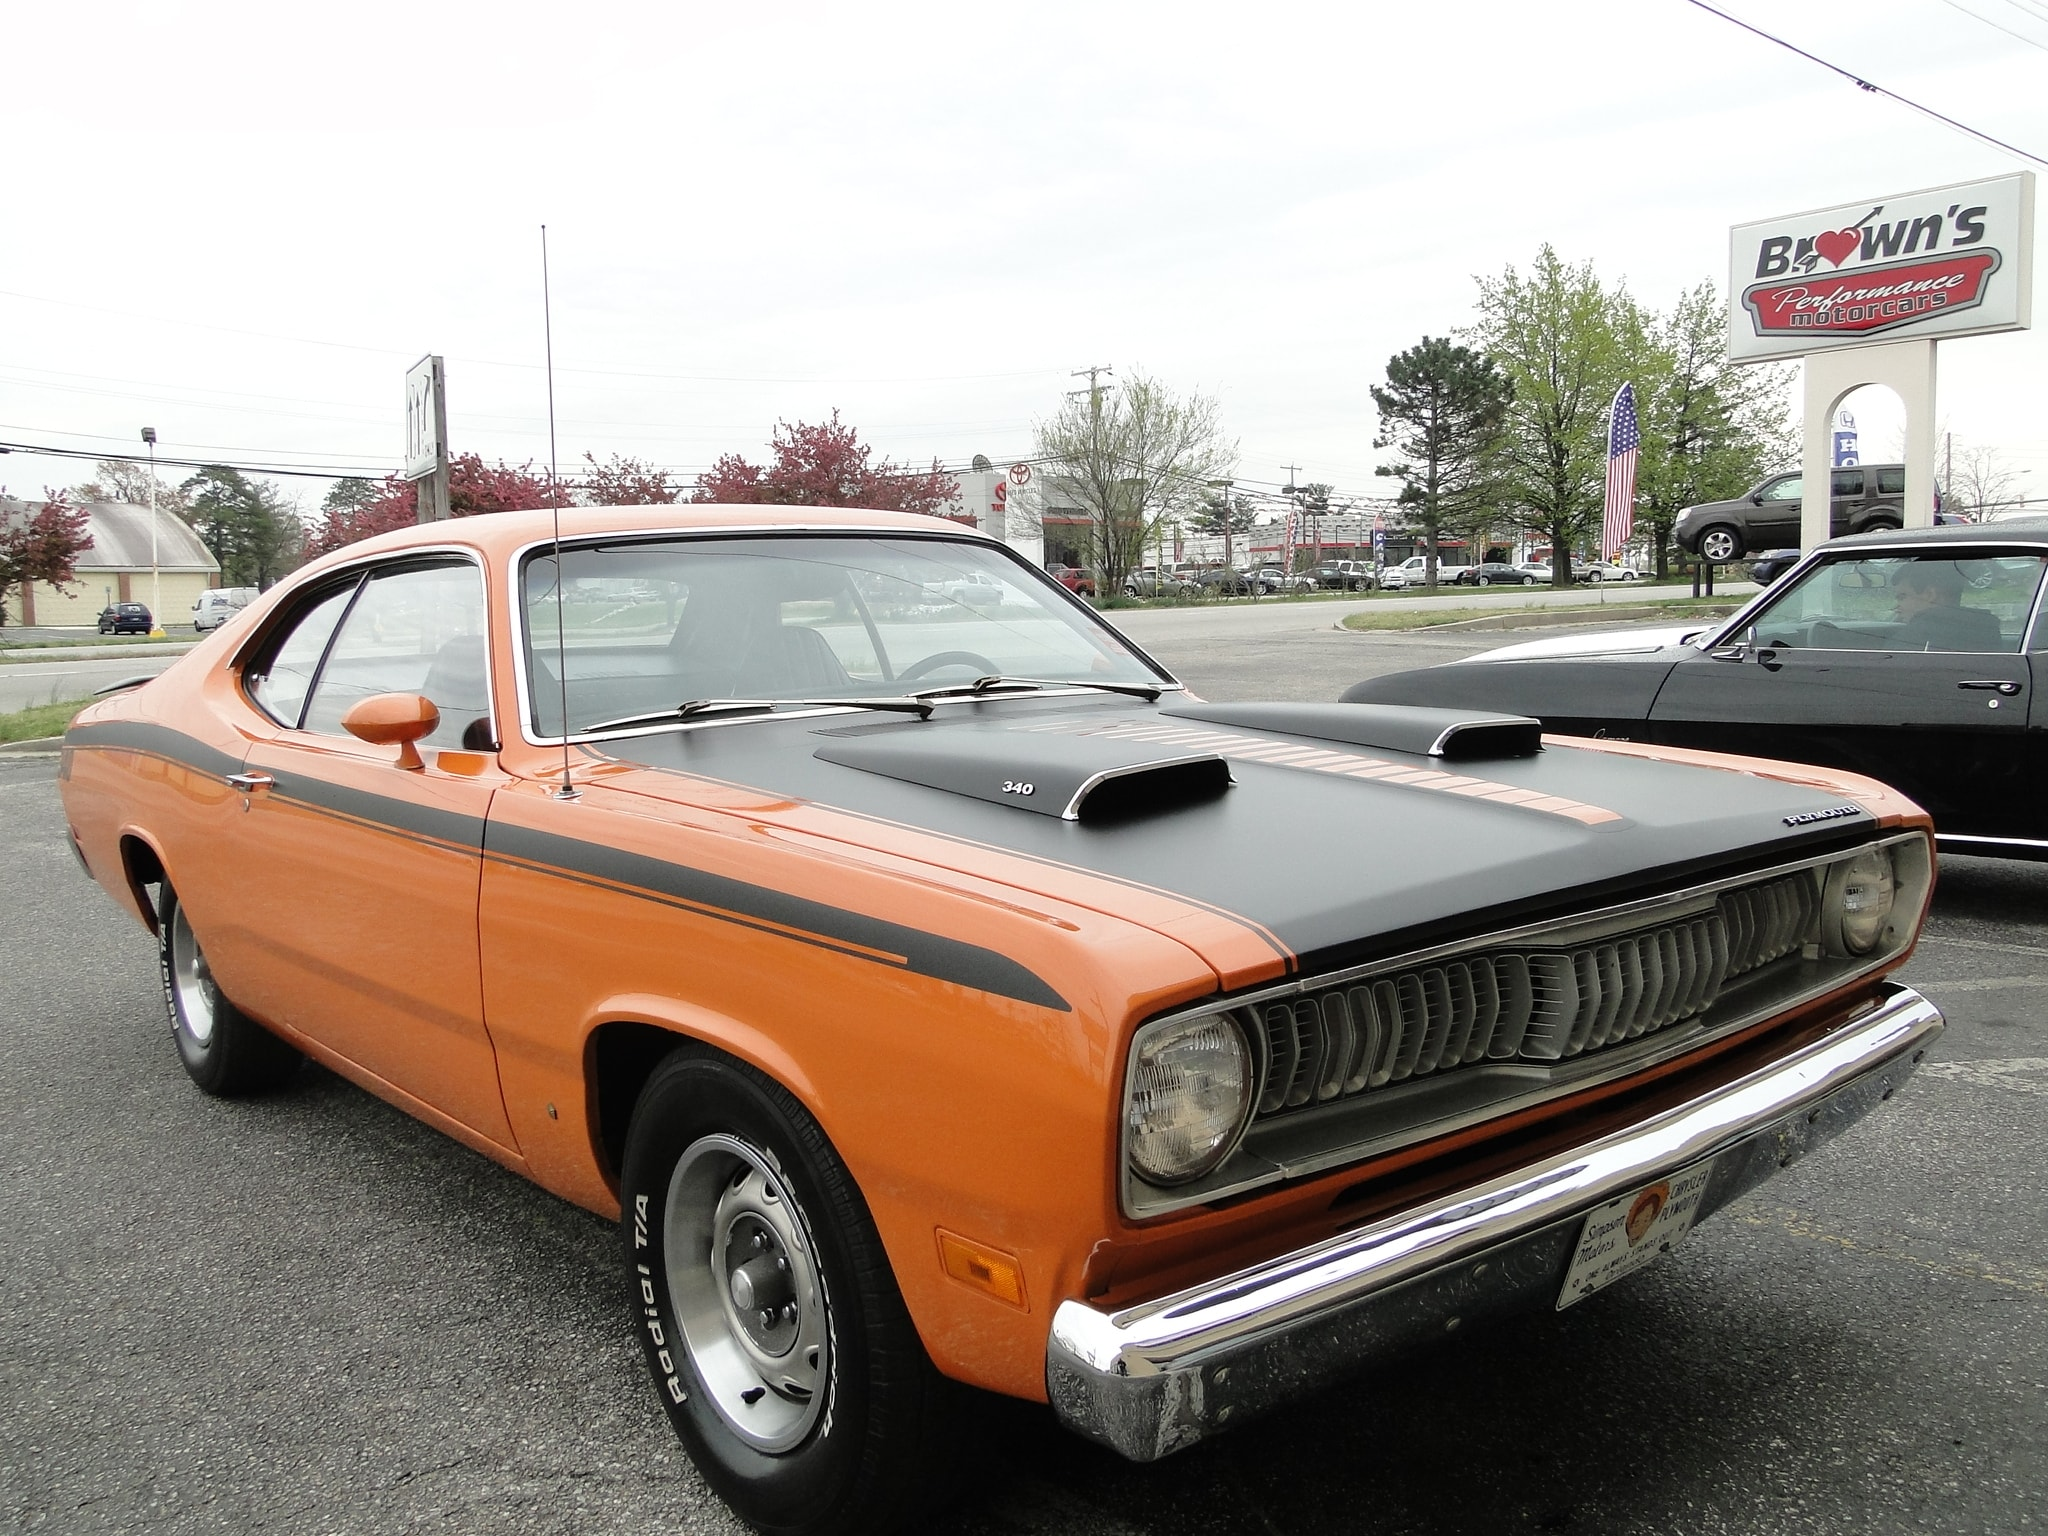 New 1971 Plymouth Duster 340